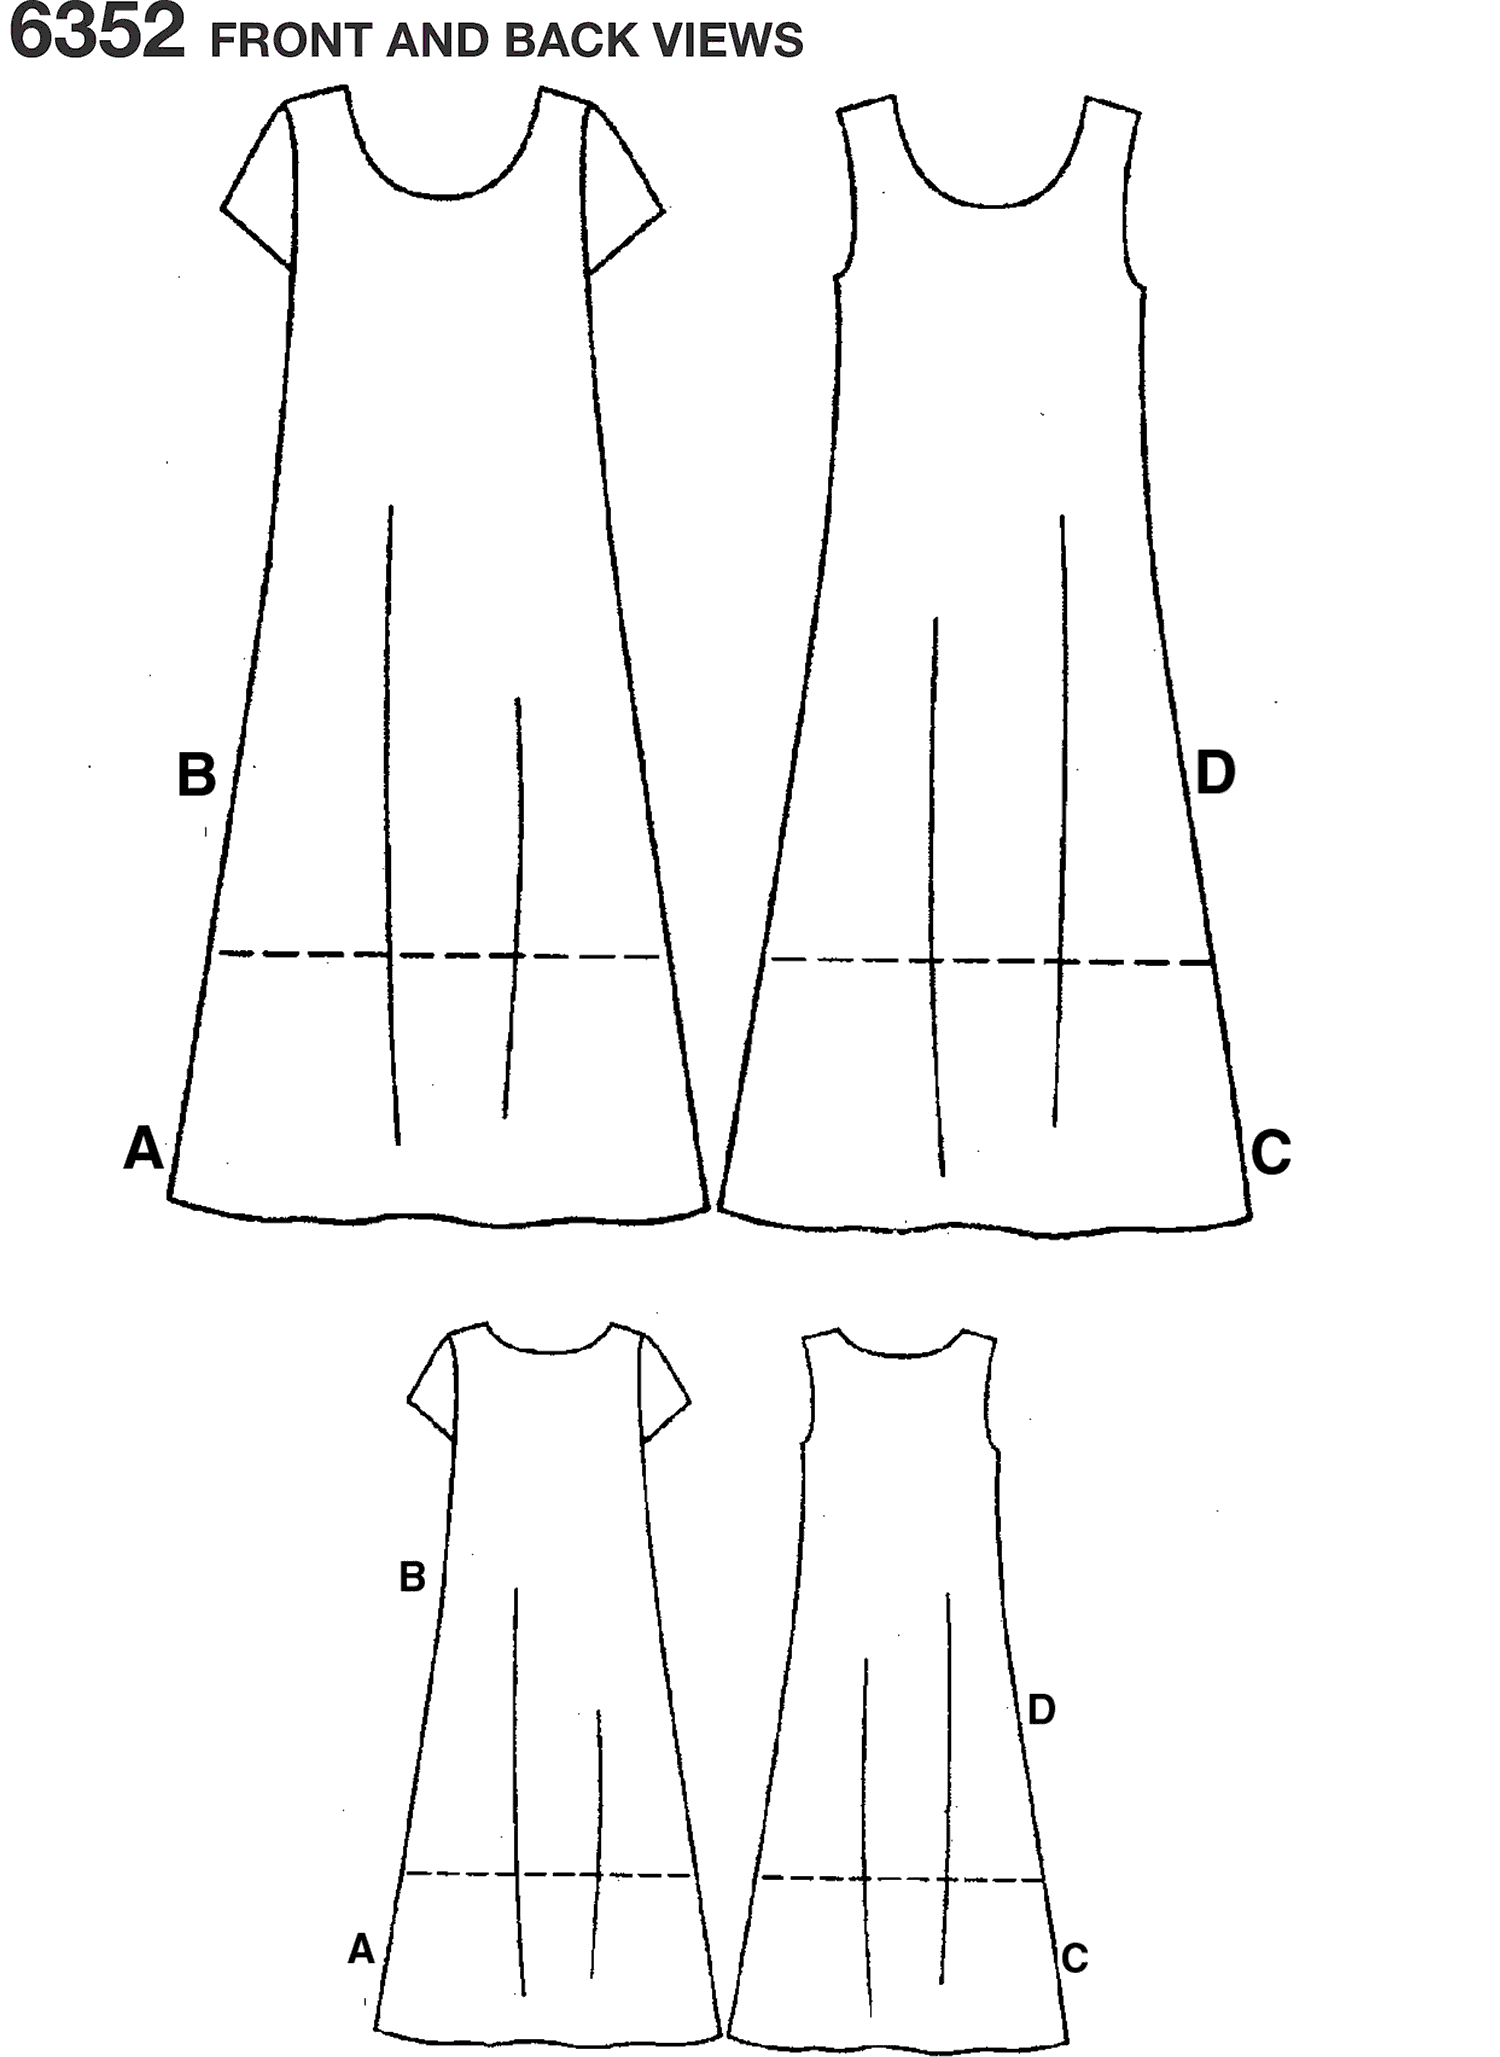 New Look Pattern 6352 Misses Dresses Line Art From Patternsandplains.com